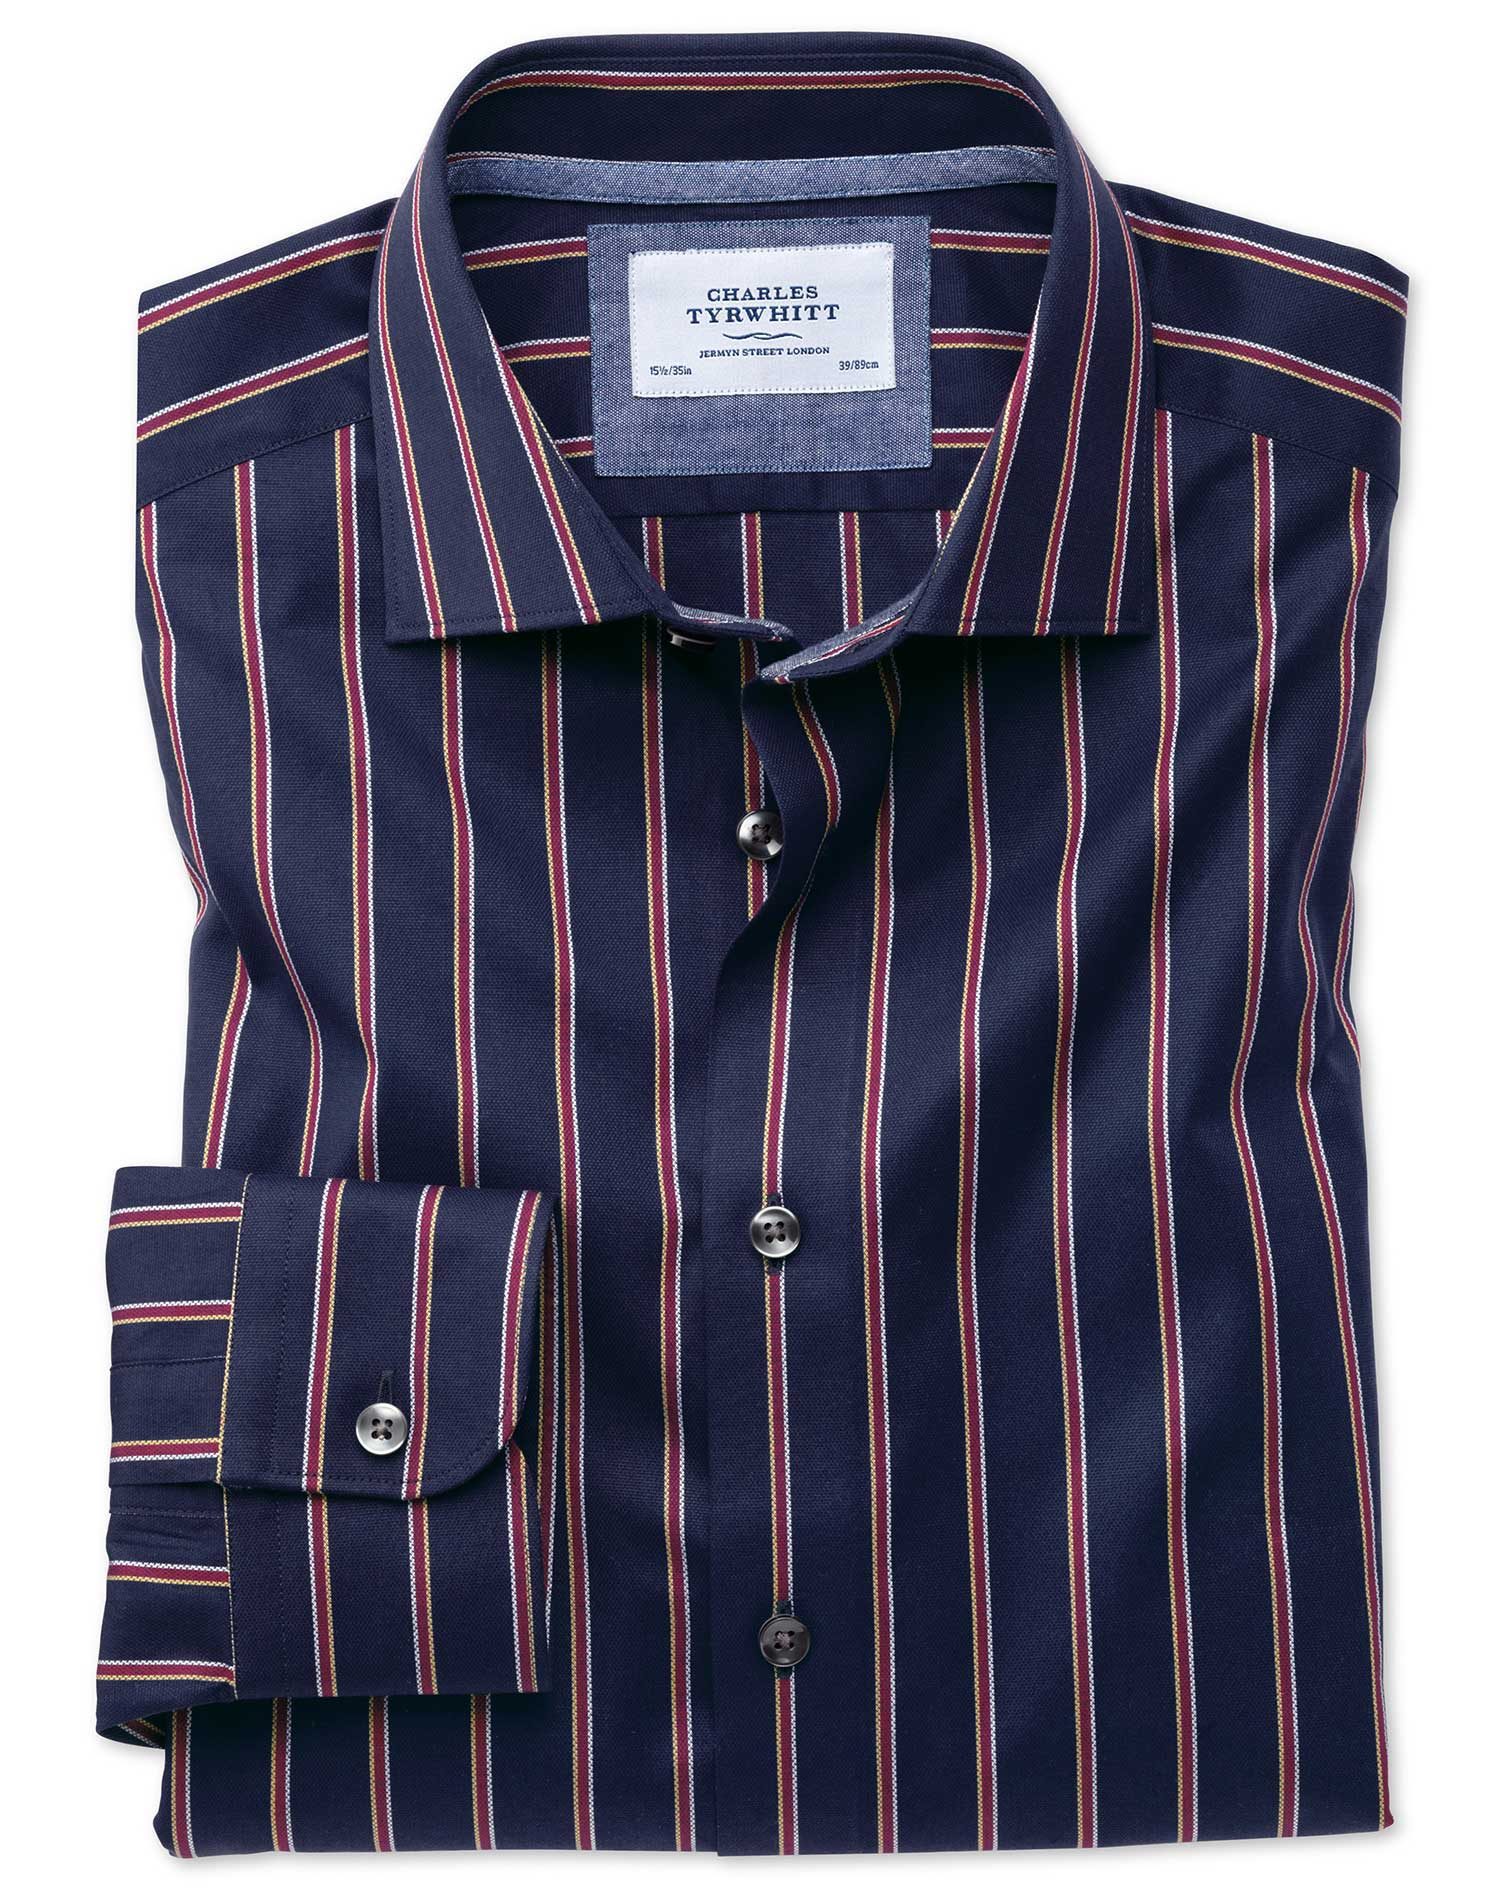 Extra Slim Fit Semi-Cutaway Business Casual Boating Navy and Red Stripe Cotton Formal Shirt Single C